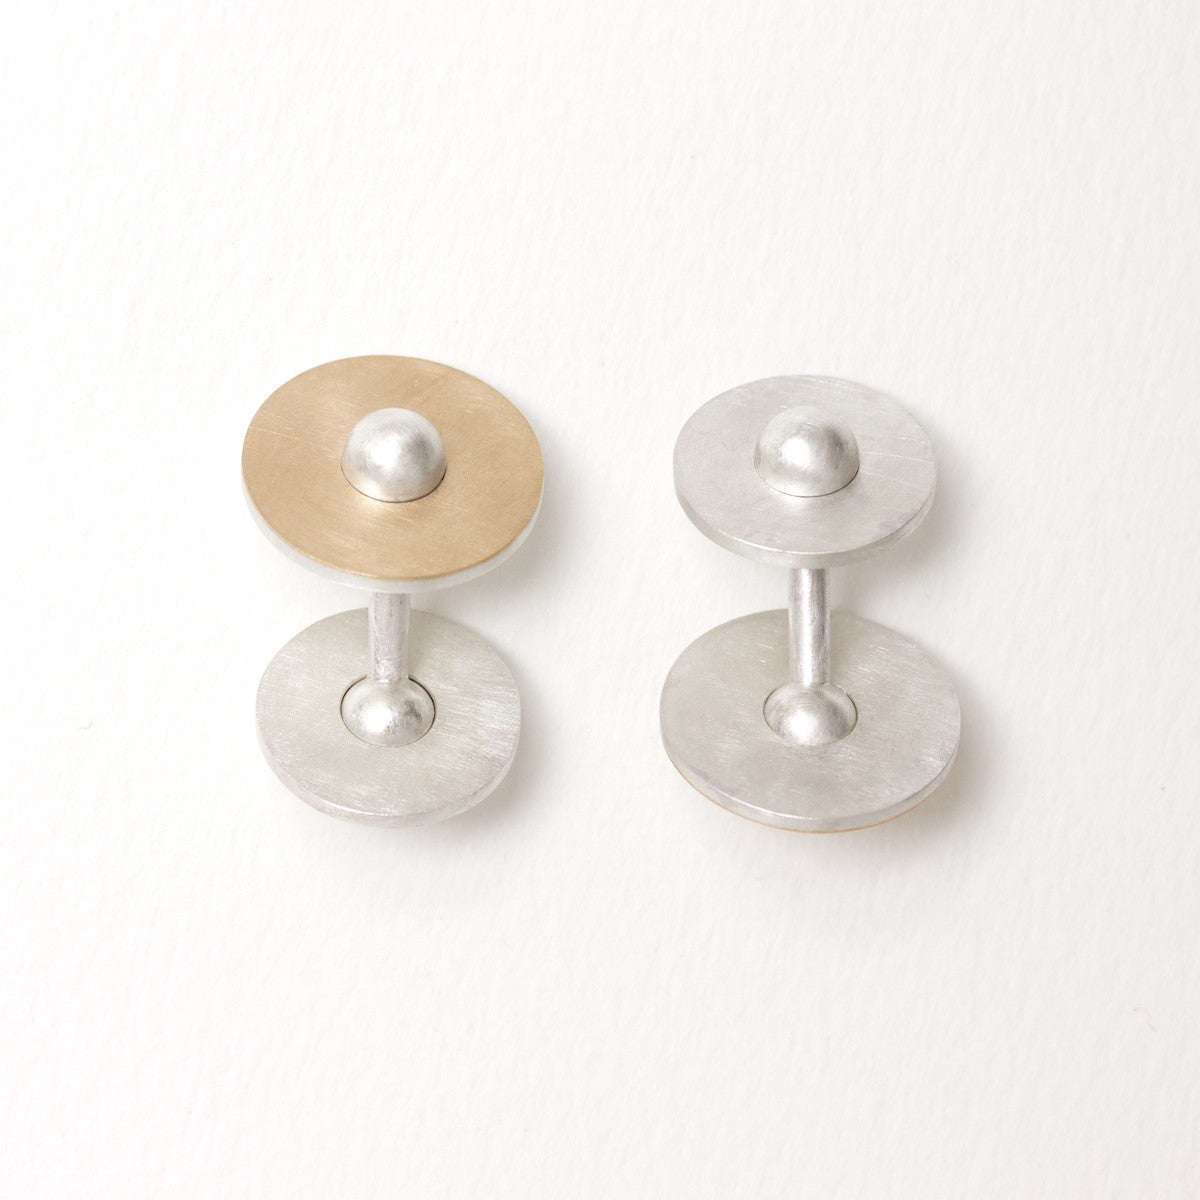 'Himmelmekanik' Gold and Silver Cufflinks